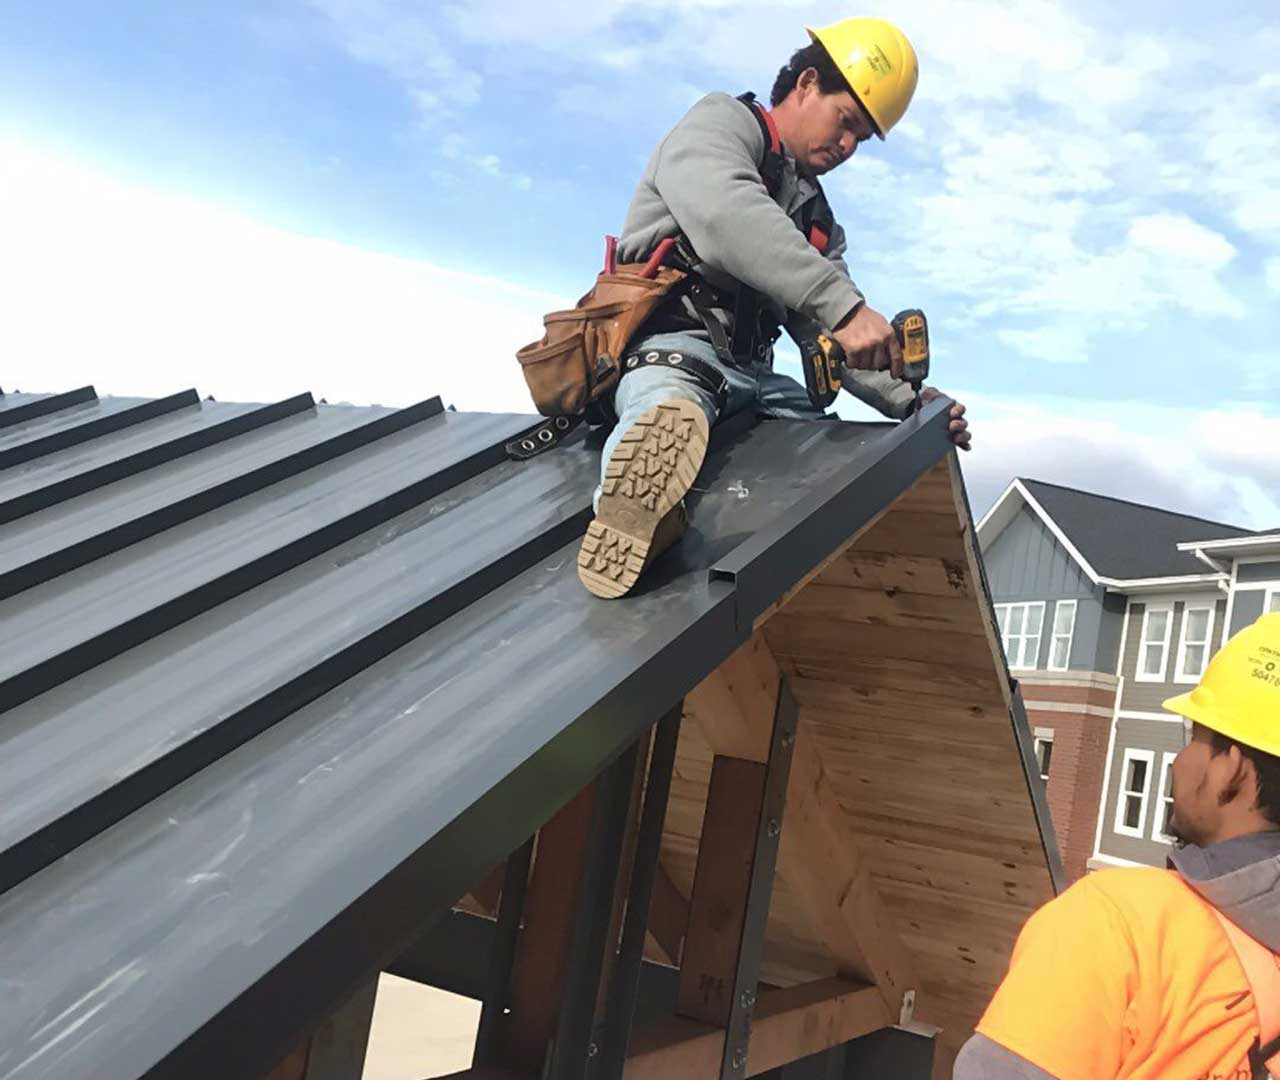 roofer installing a roof on a home